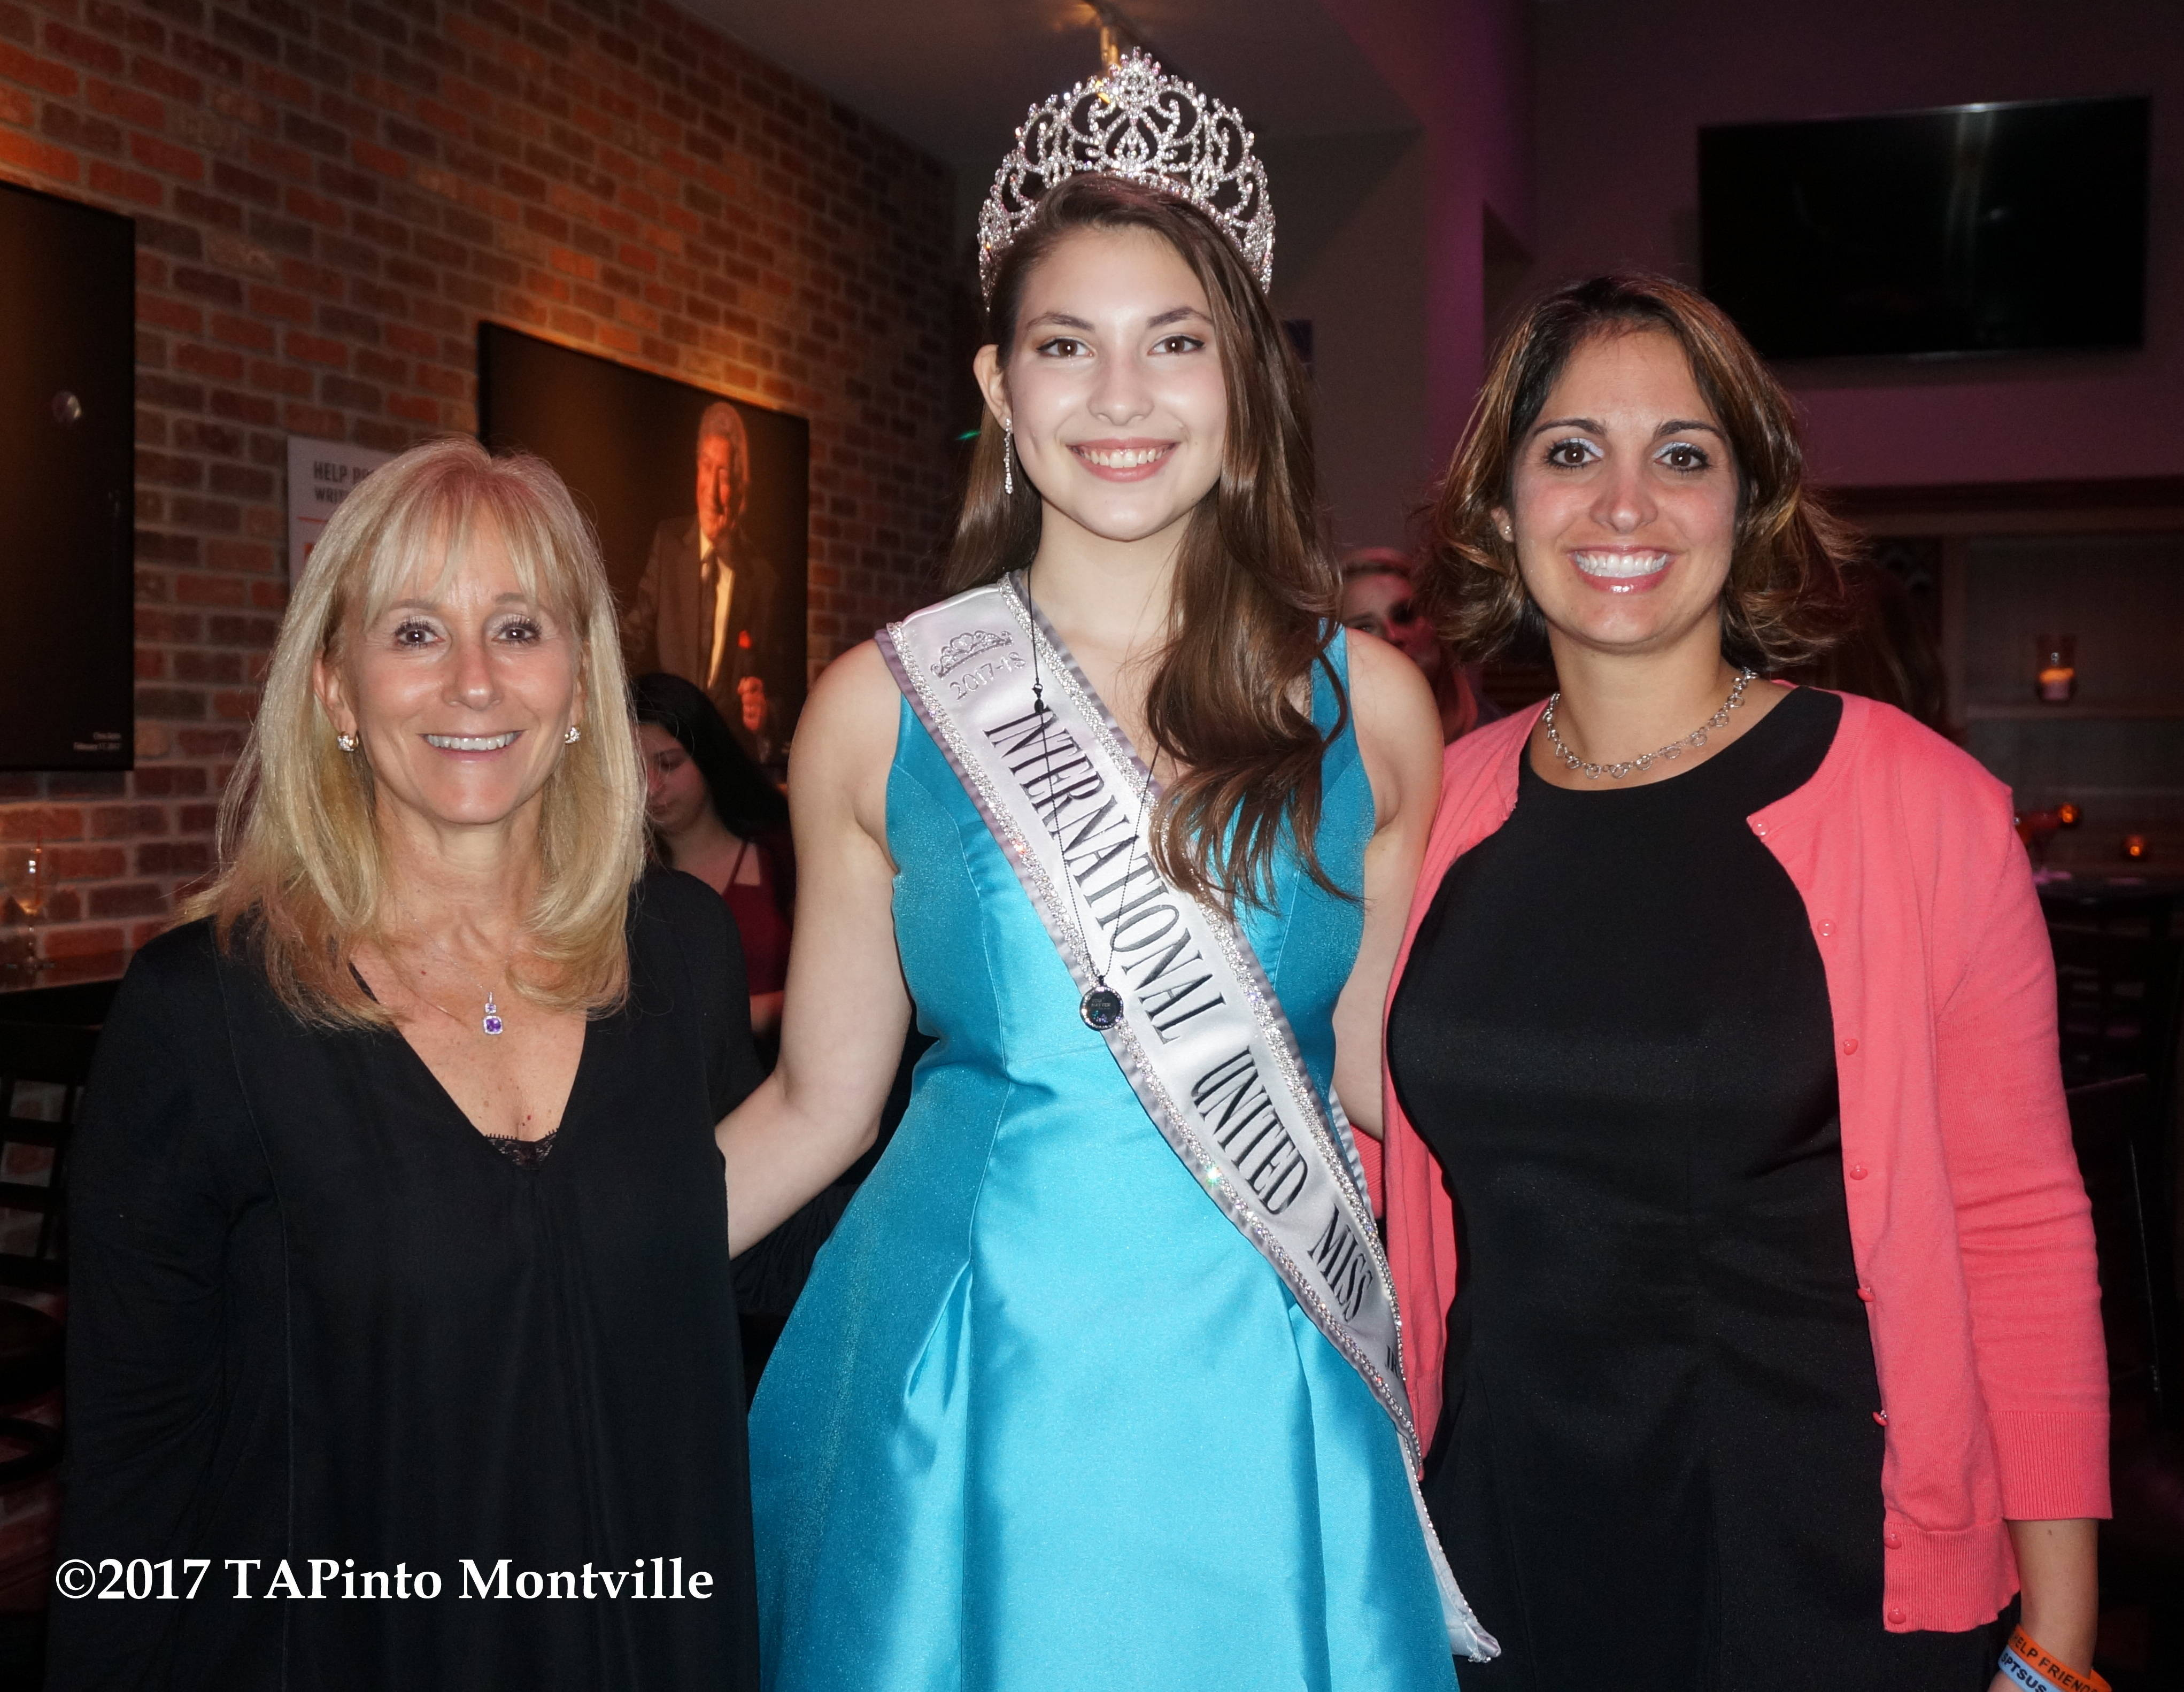 2cfe7143dbb083daed59_a_Wendy_Sefcik__Veronica_Tullo_and_Dawn_Doherty_of_SPTS_at_the_HEART_fundraiser__2017_TAPinto_Montville.JPG